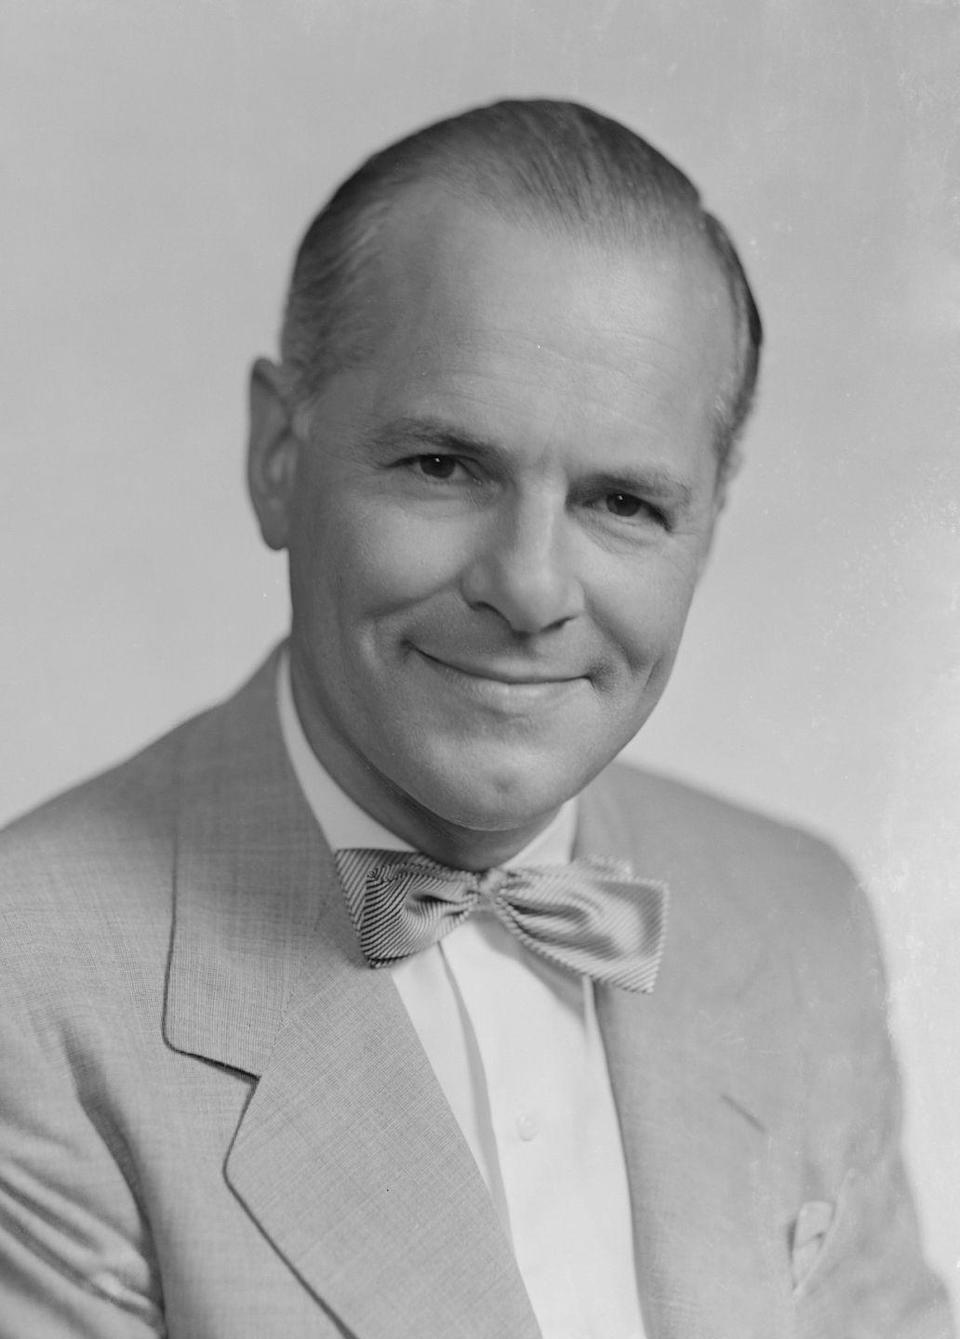 <p>John Davis Lodge reached the peak of his acting career in the '30s after starring in blockbusters like <em>Little Women </em>and<em> The Scarlet Empress.</em> In 1947, Lodge was elected to serve in the House of Representatives. The actor went on to become the Governor of Connecticut in 1951. </p>